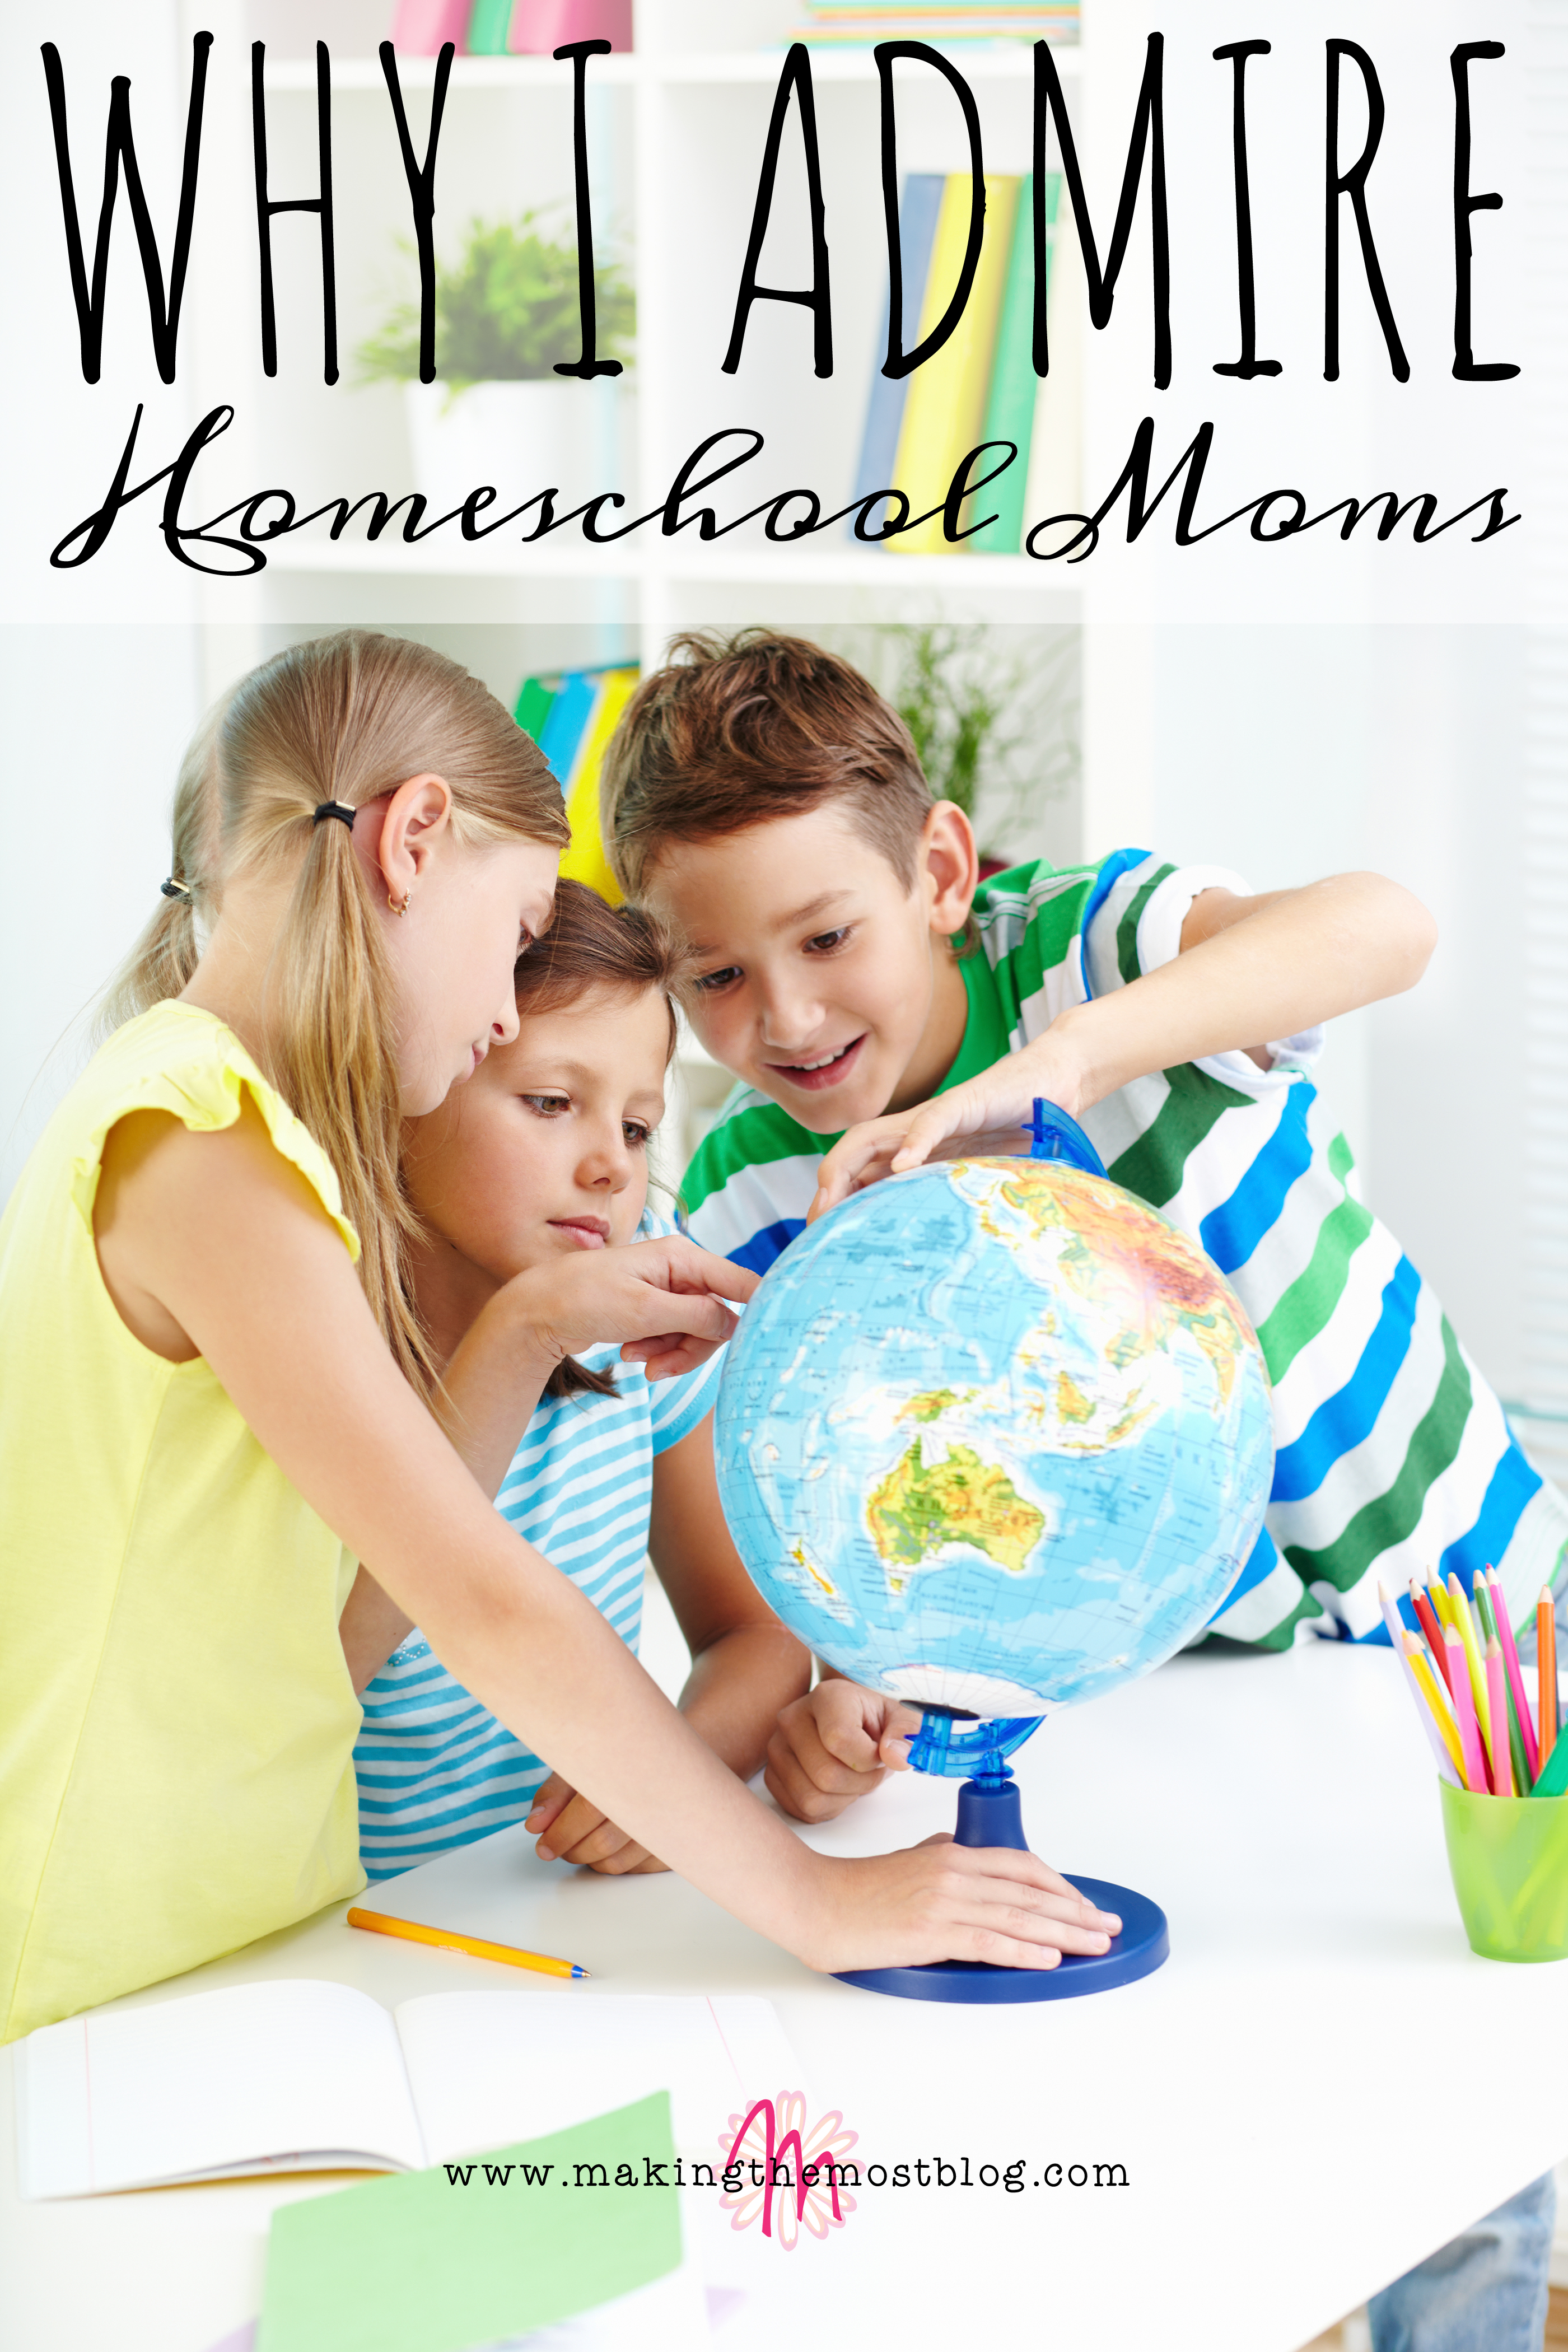 Why I Admire Homeschool Moms | Making the Most Blog